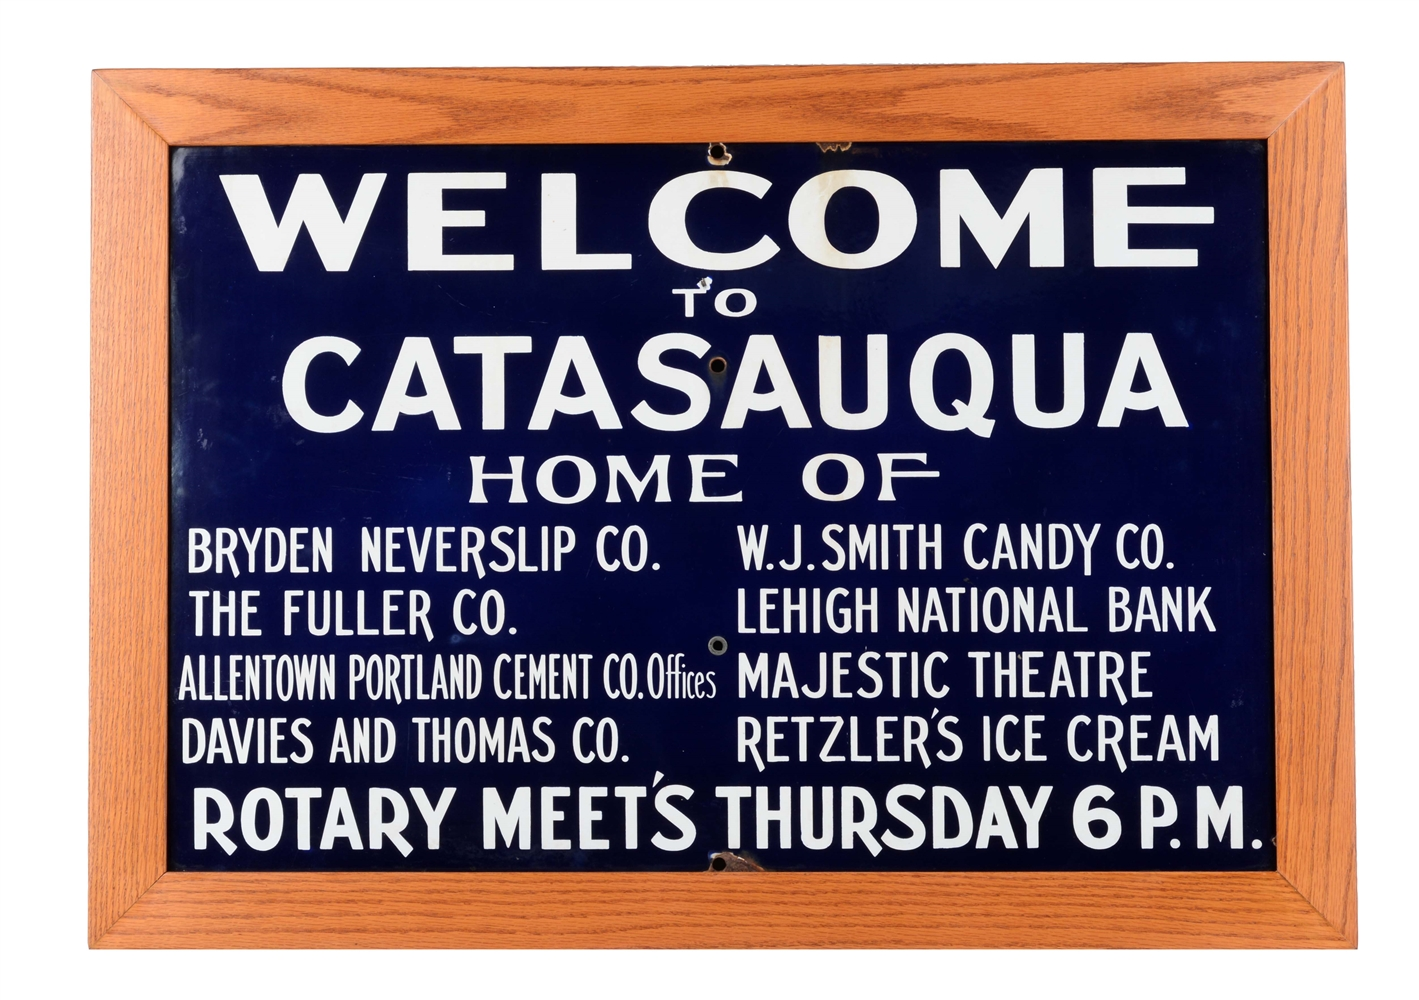 Catasauqua, Pennsylvania Porcelain Advertising Sign.